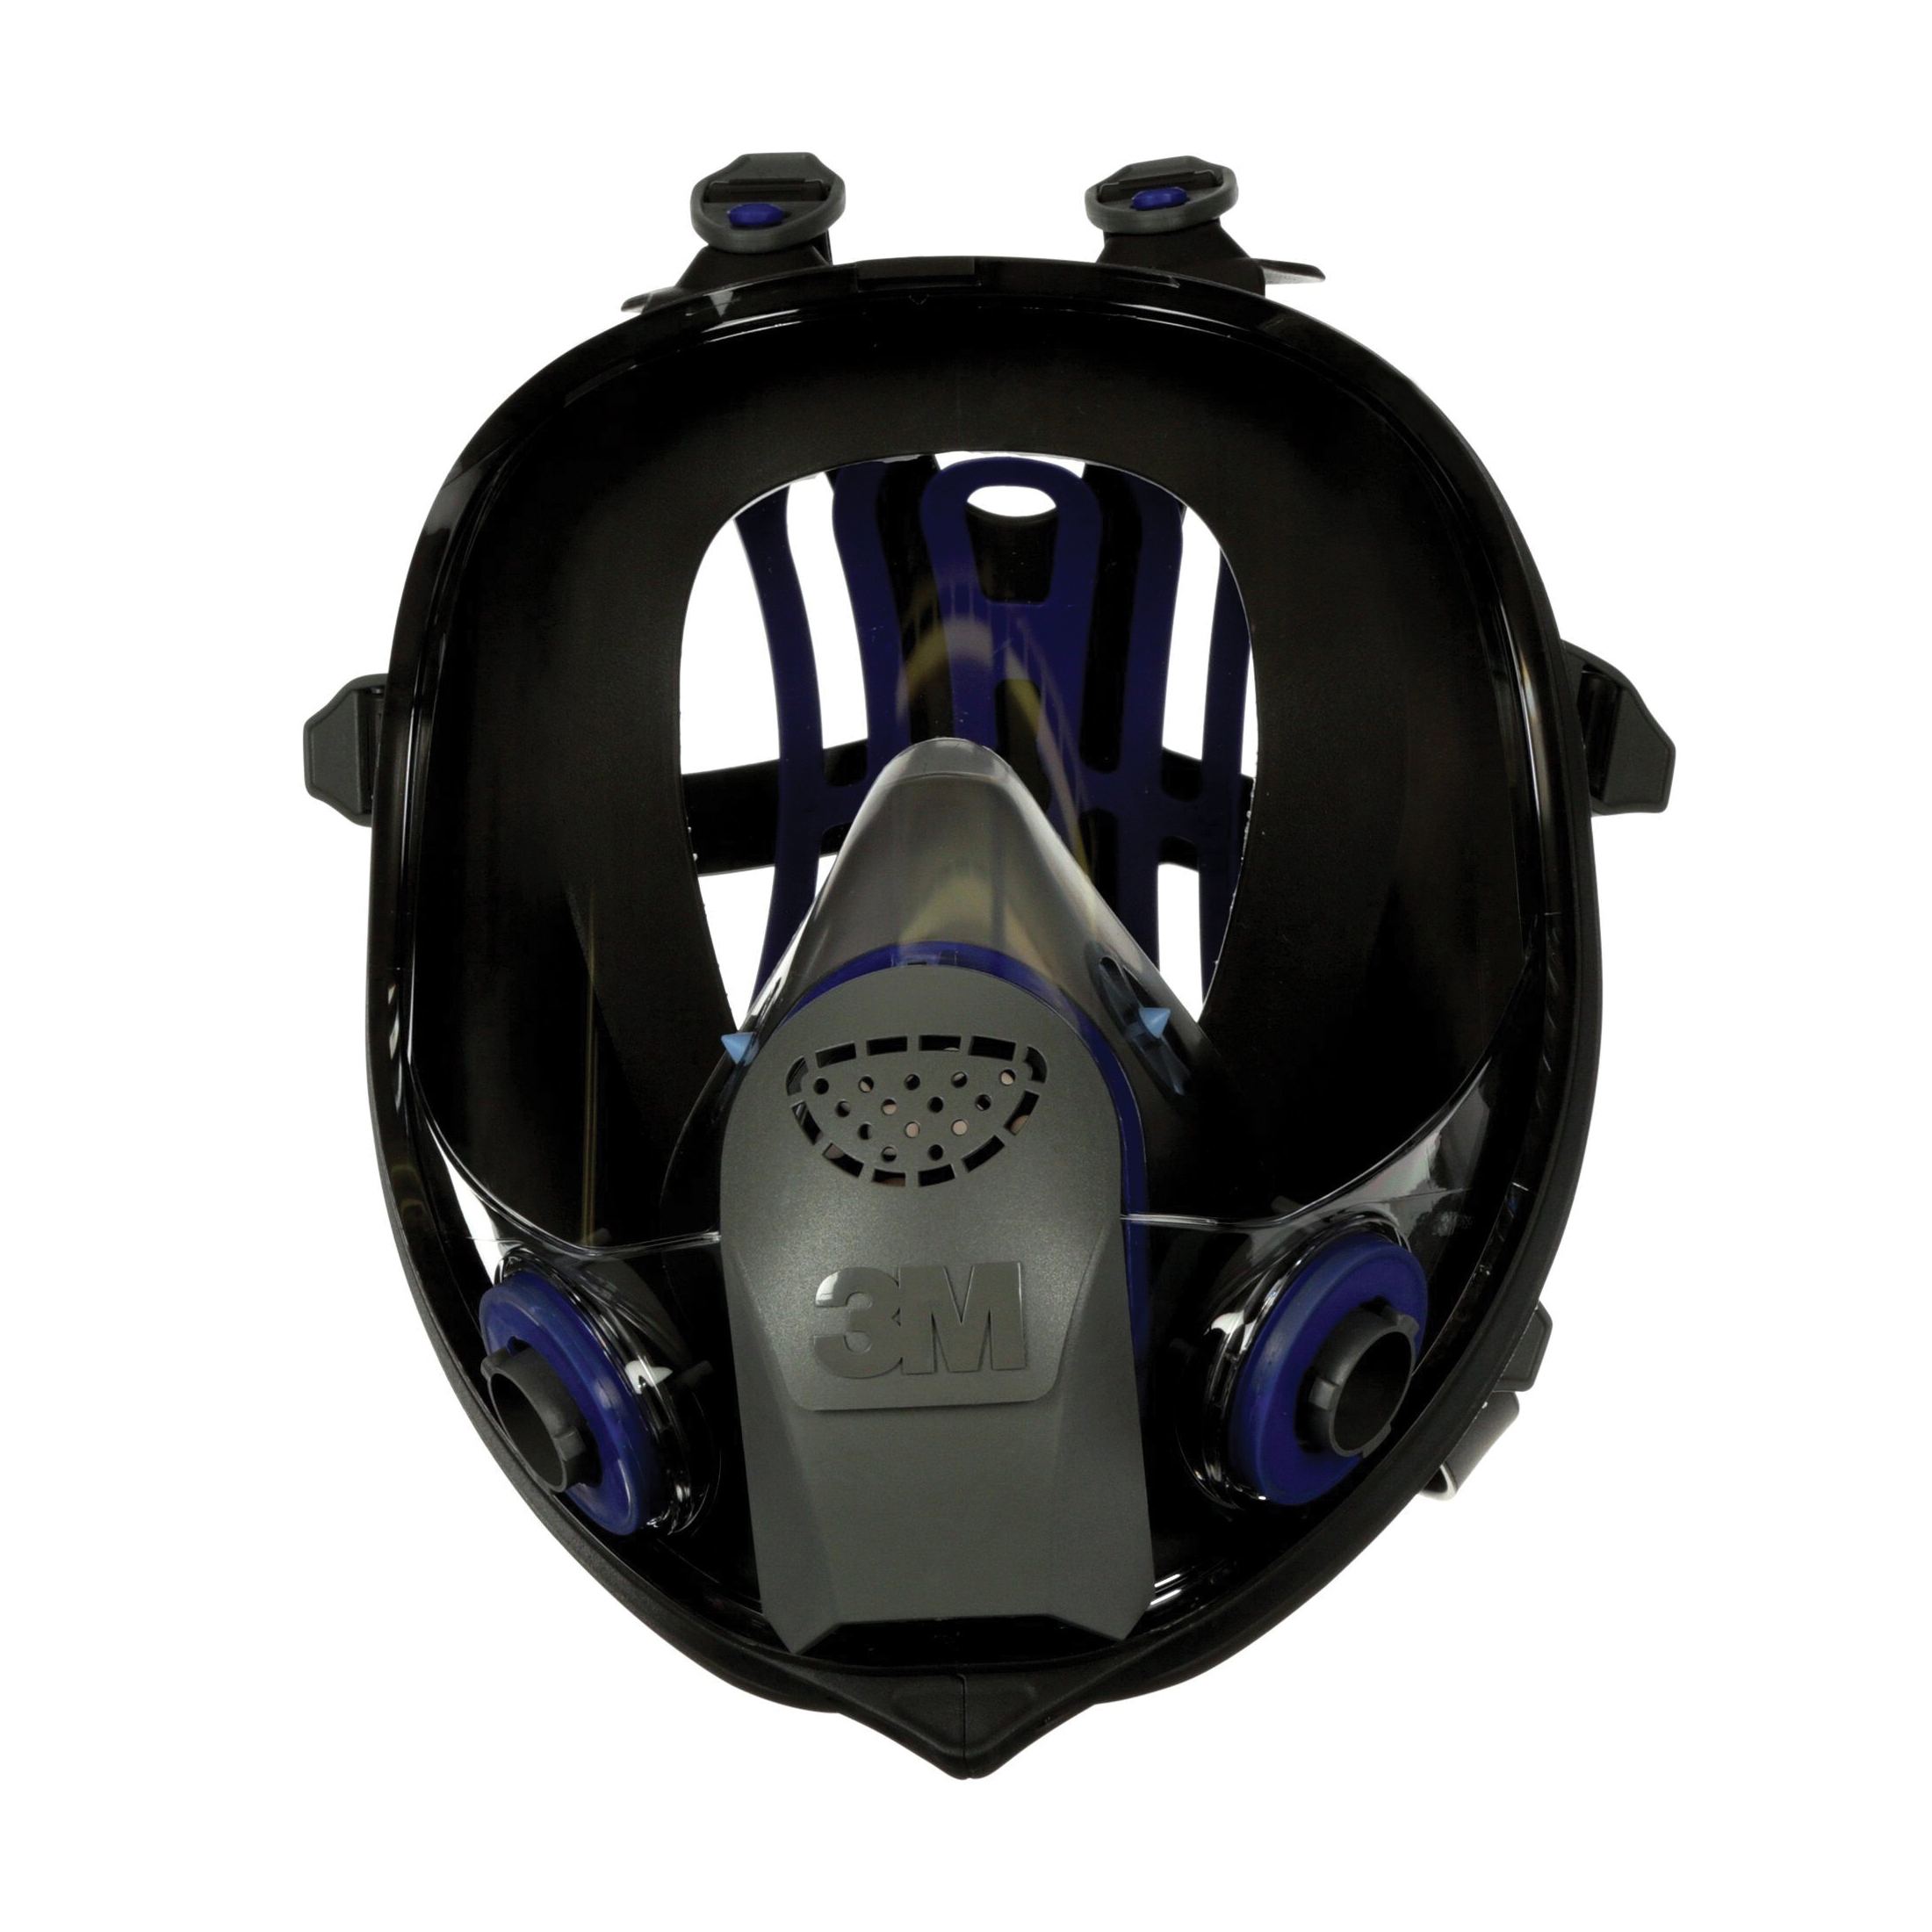 3M™ 051135-89421 Reusable Ultimate FX Full Face Respirator, M, 6-Point Suspension, Bayonet Connection